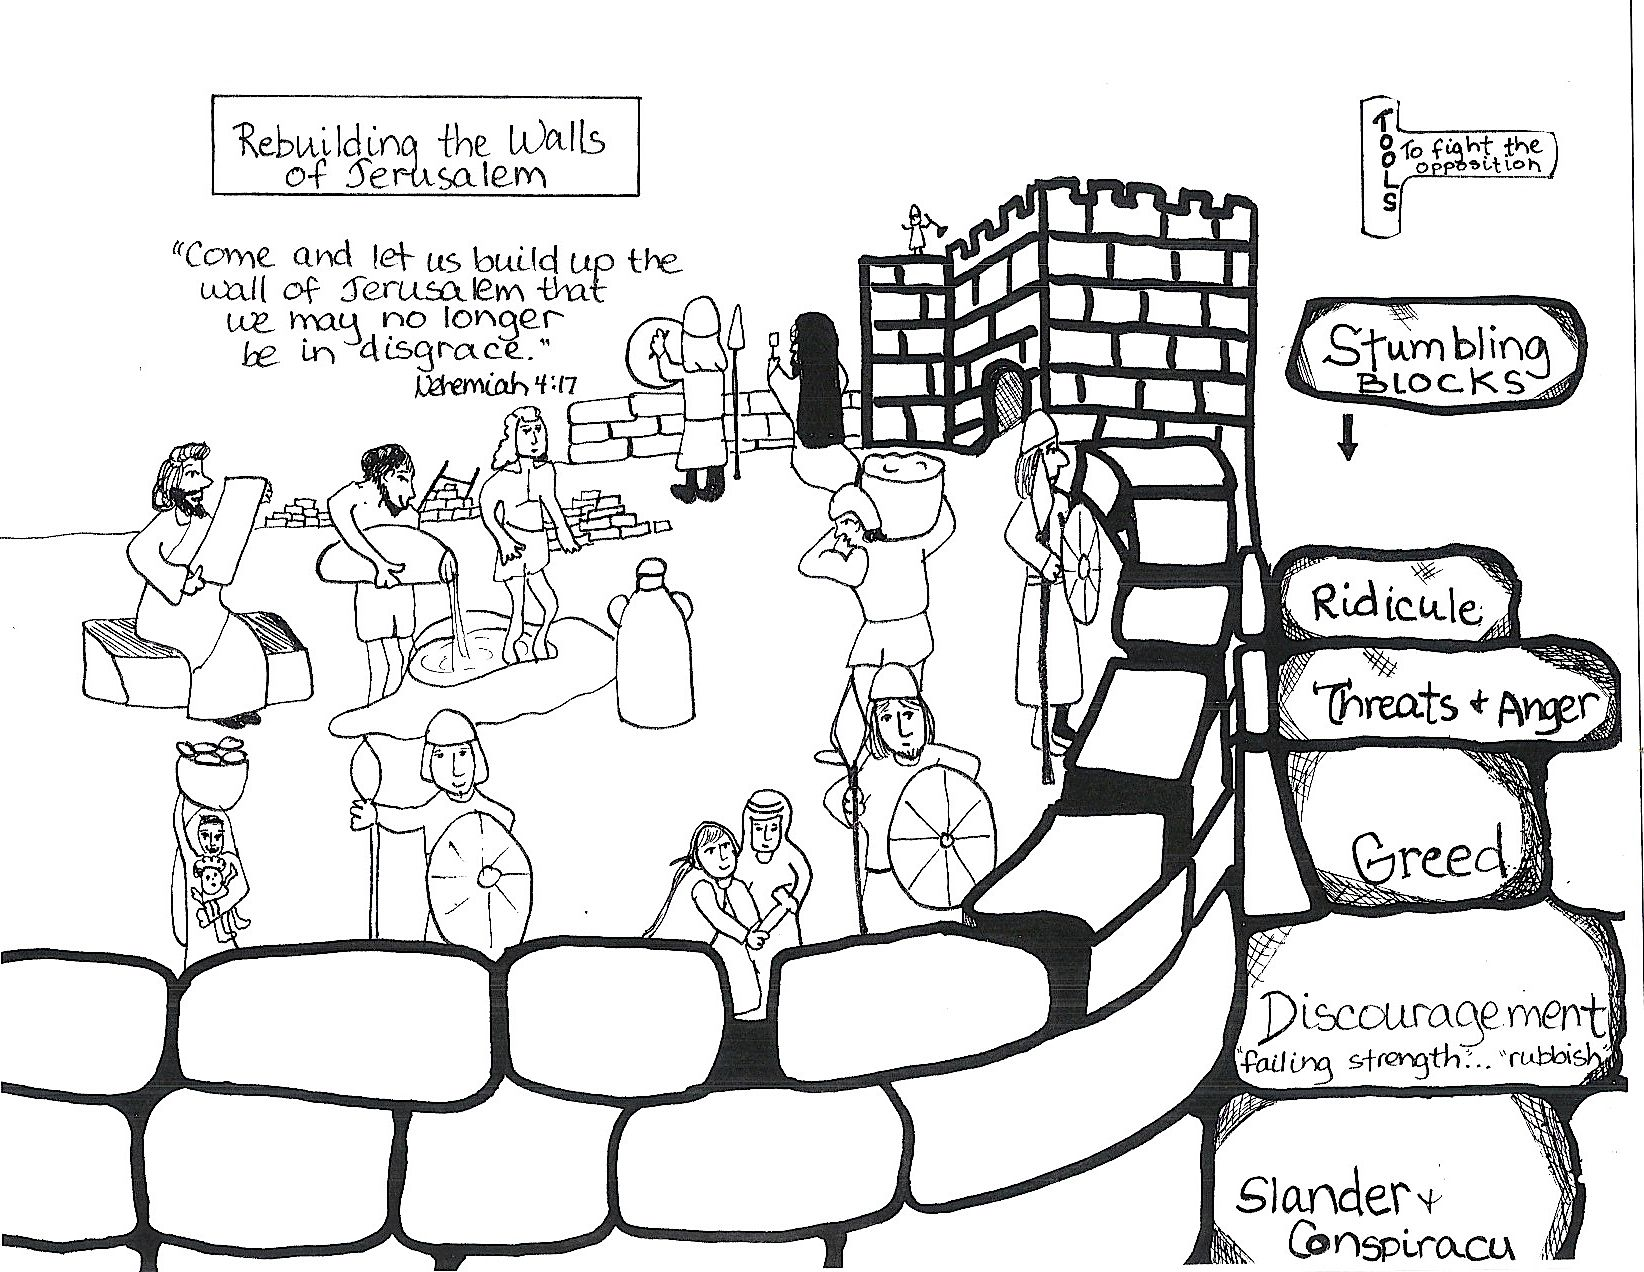 Free coloring pages nehemiah rebuilding wall - Auntie S Bible Lessons Nehemiah Rebuilding Walls Check For Bible Accuracy Please Create A Crossword Puzzle Coloring Page